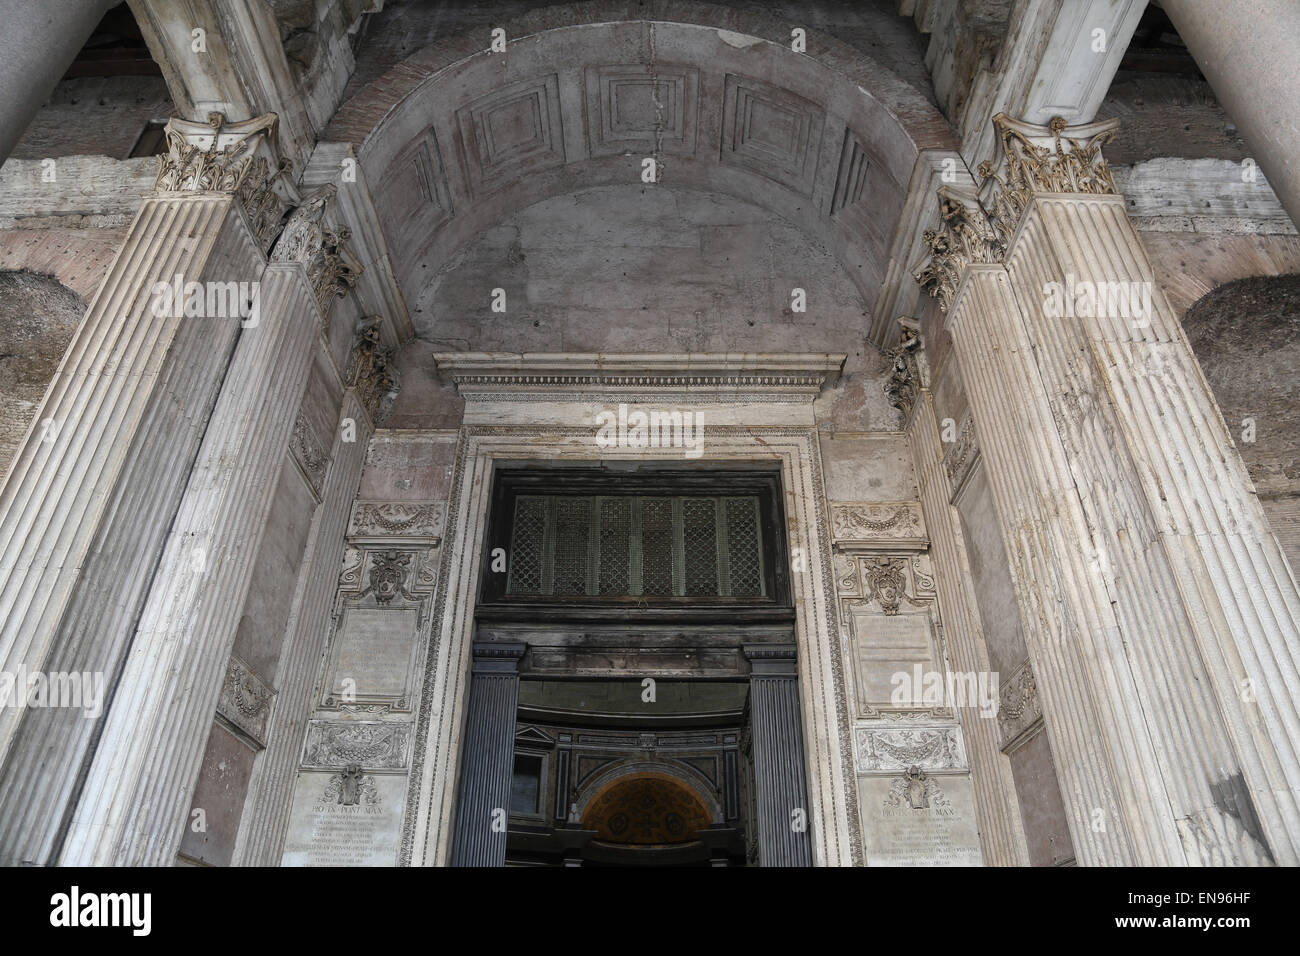 Italy. Rome. Pantheon. Roman temple. 2nd century AD. Under the portico. - Stock Image